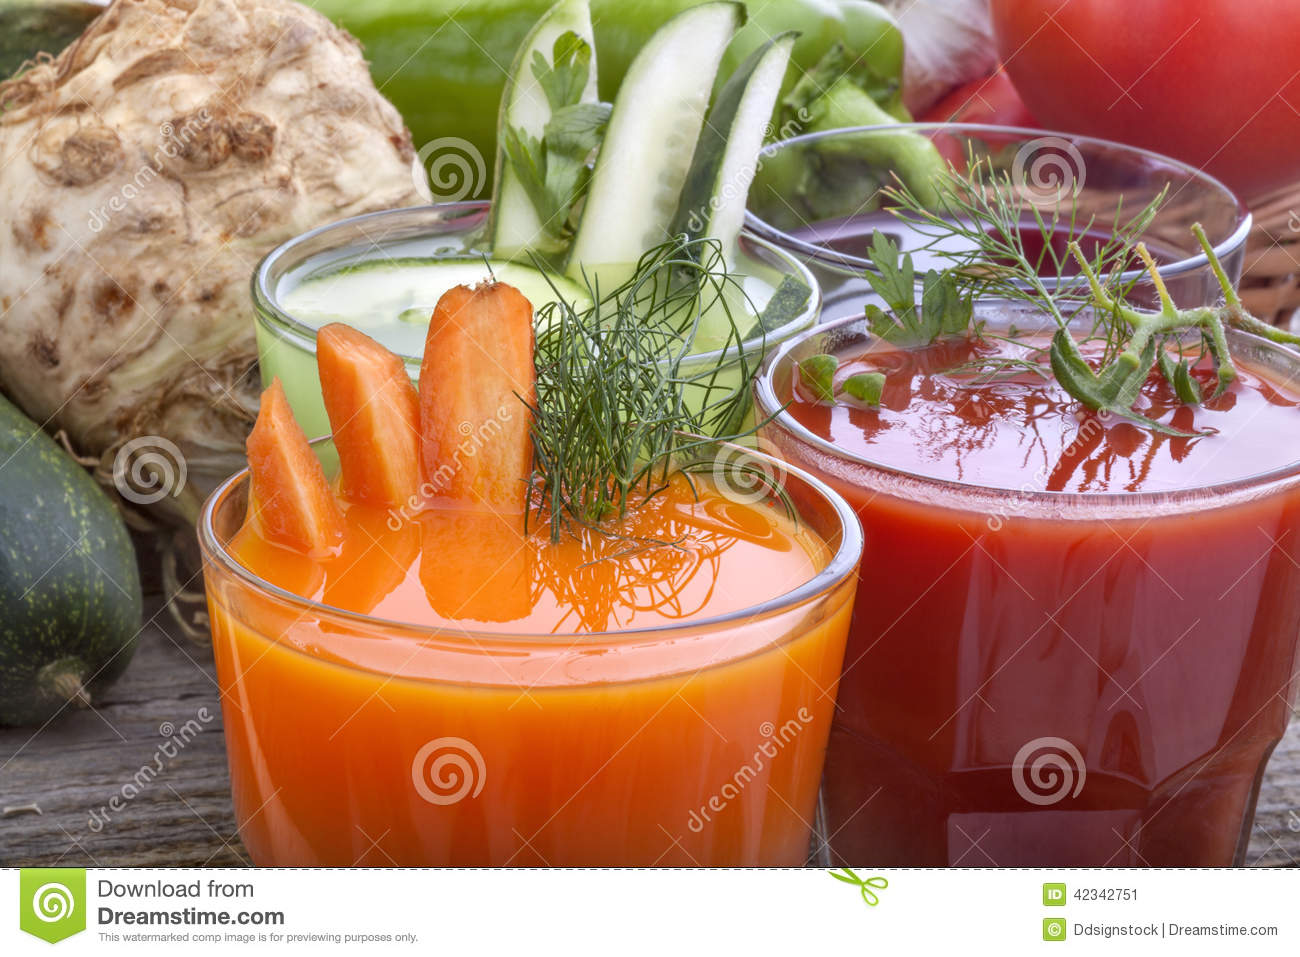 is a cucumber a fruit or vegetable healthy fruit drink